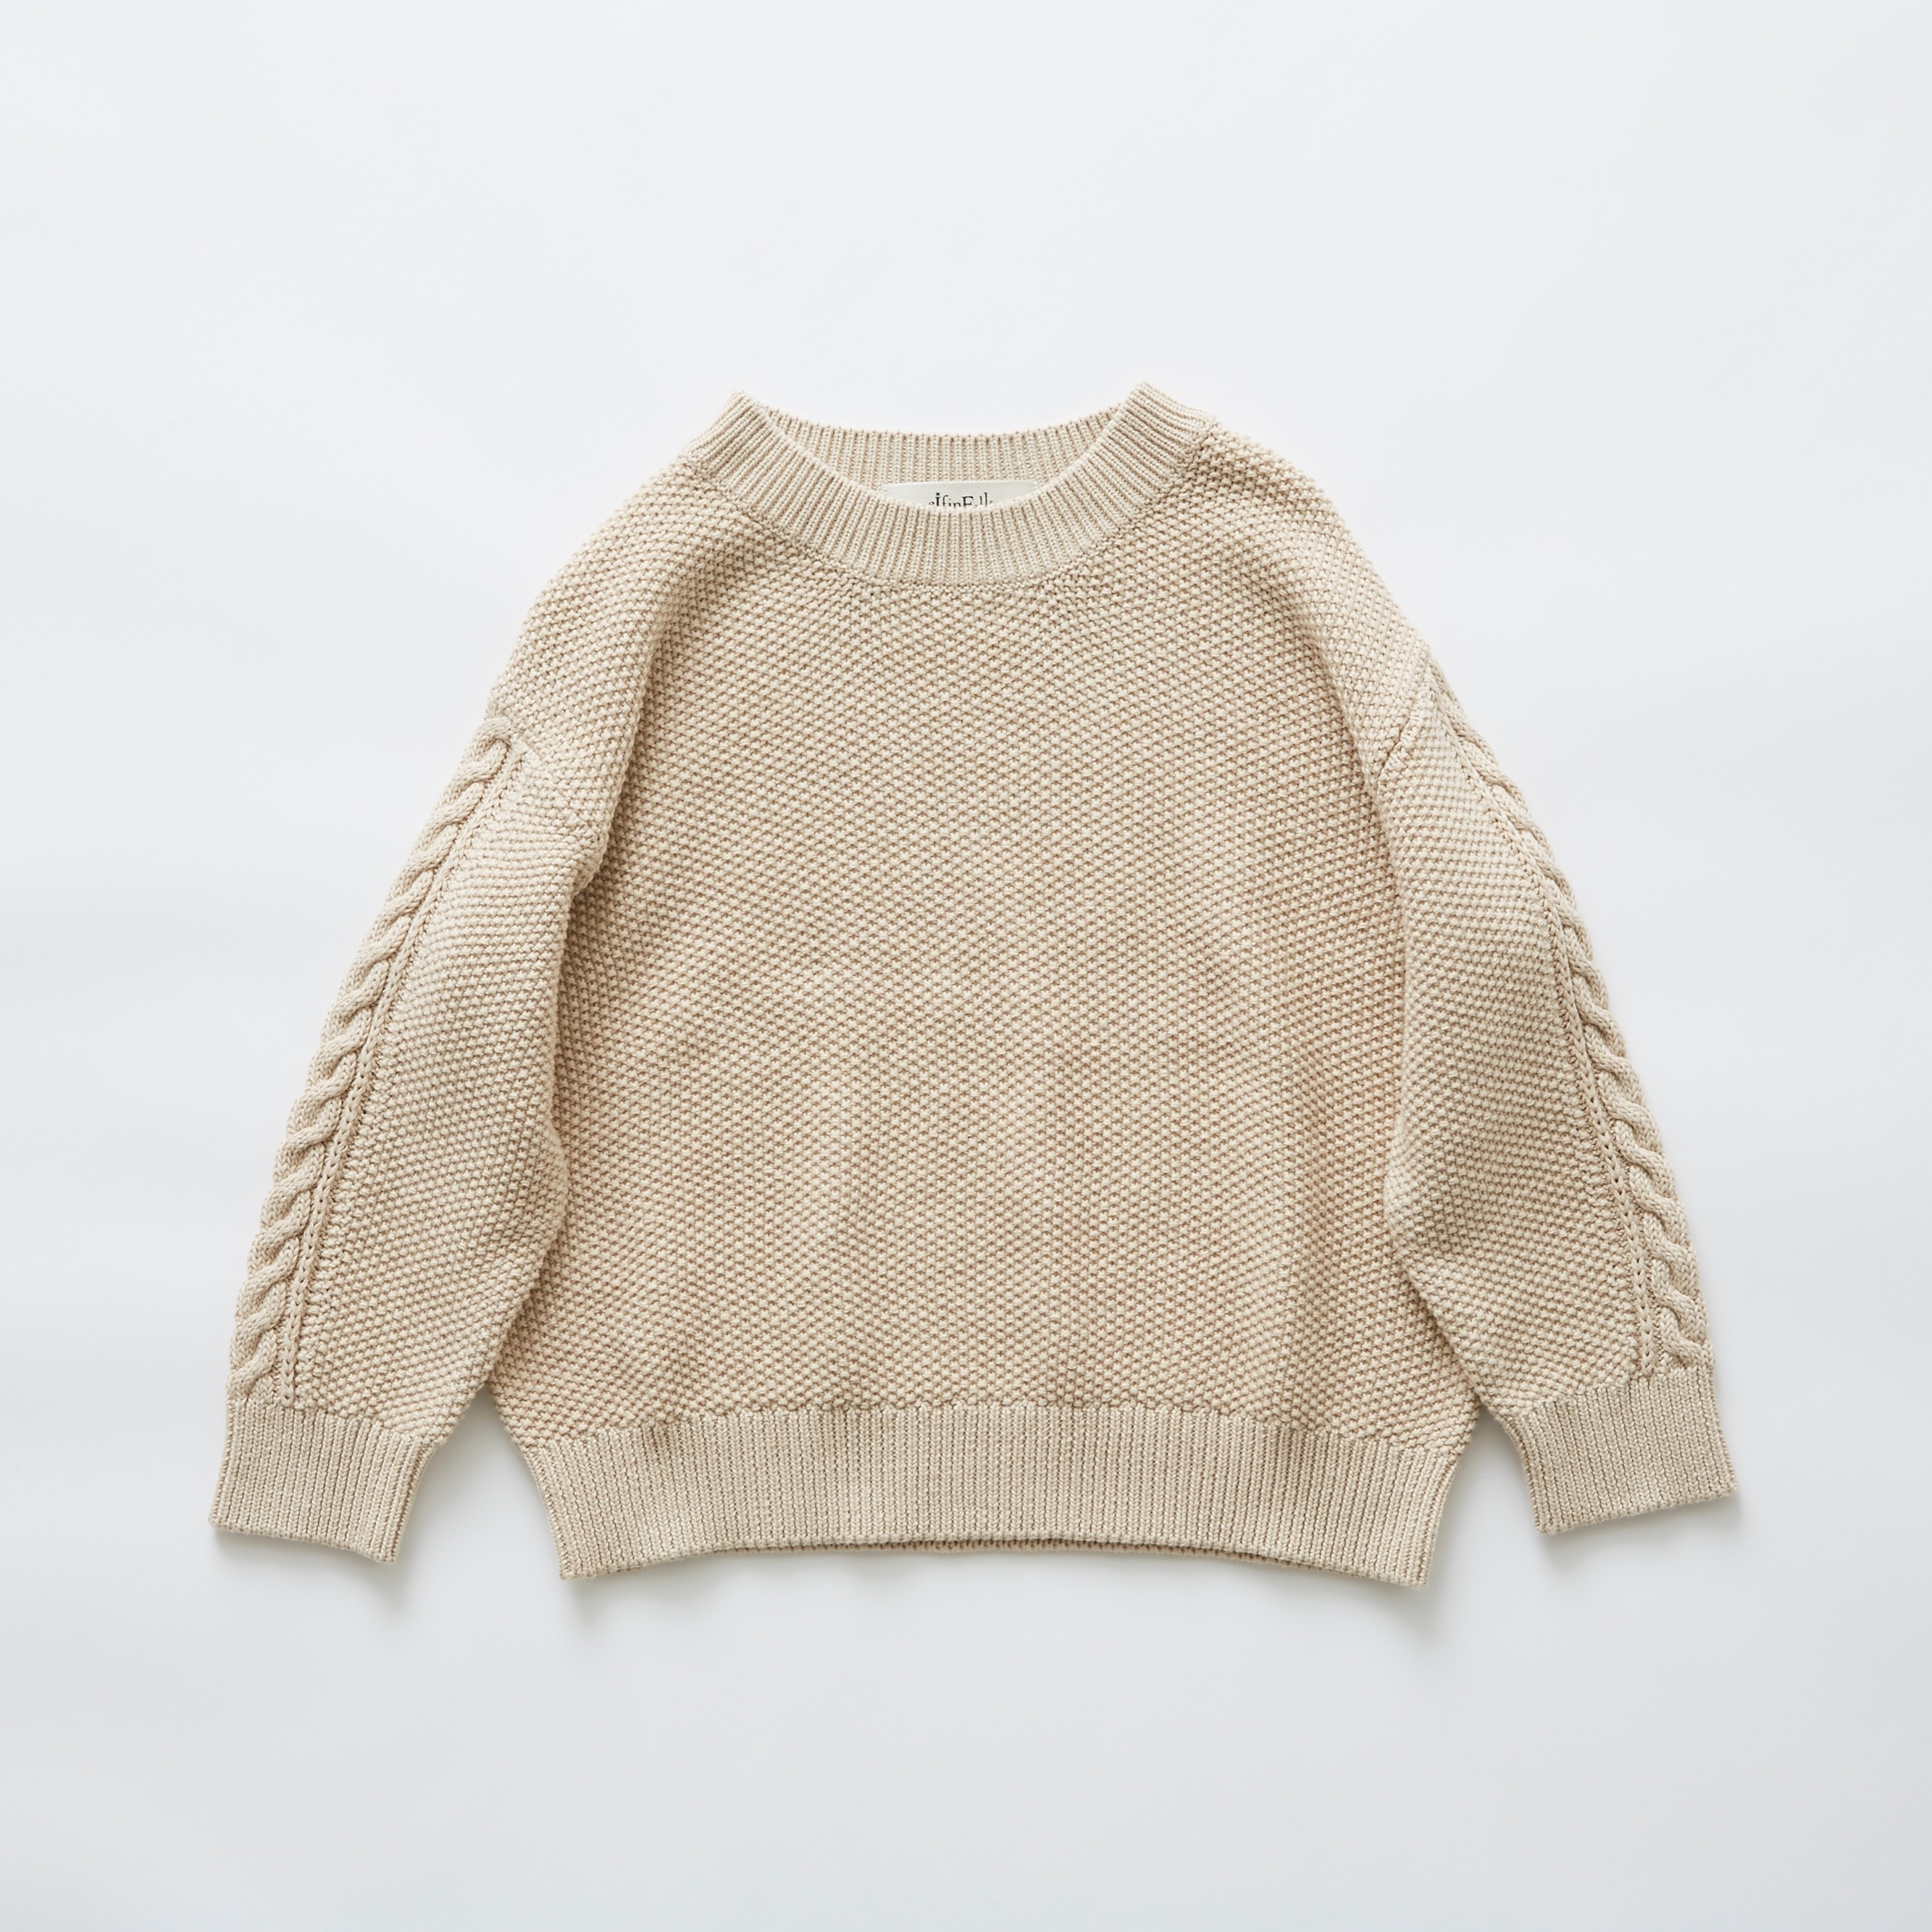 《eLfinFolk》moss stitch sweater / ivory / 110・130cm